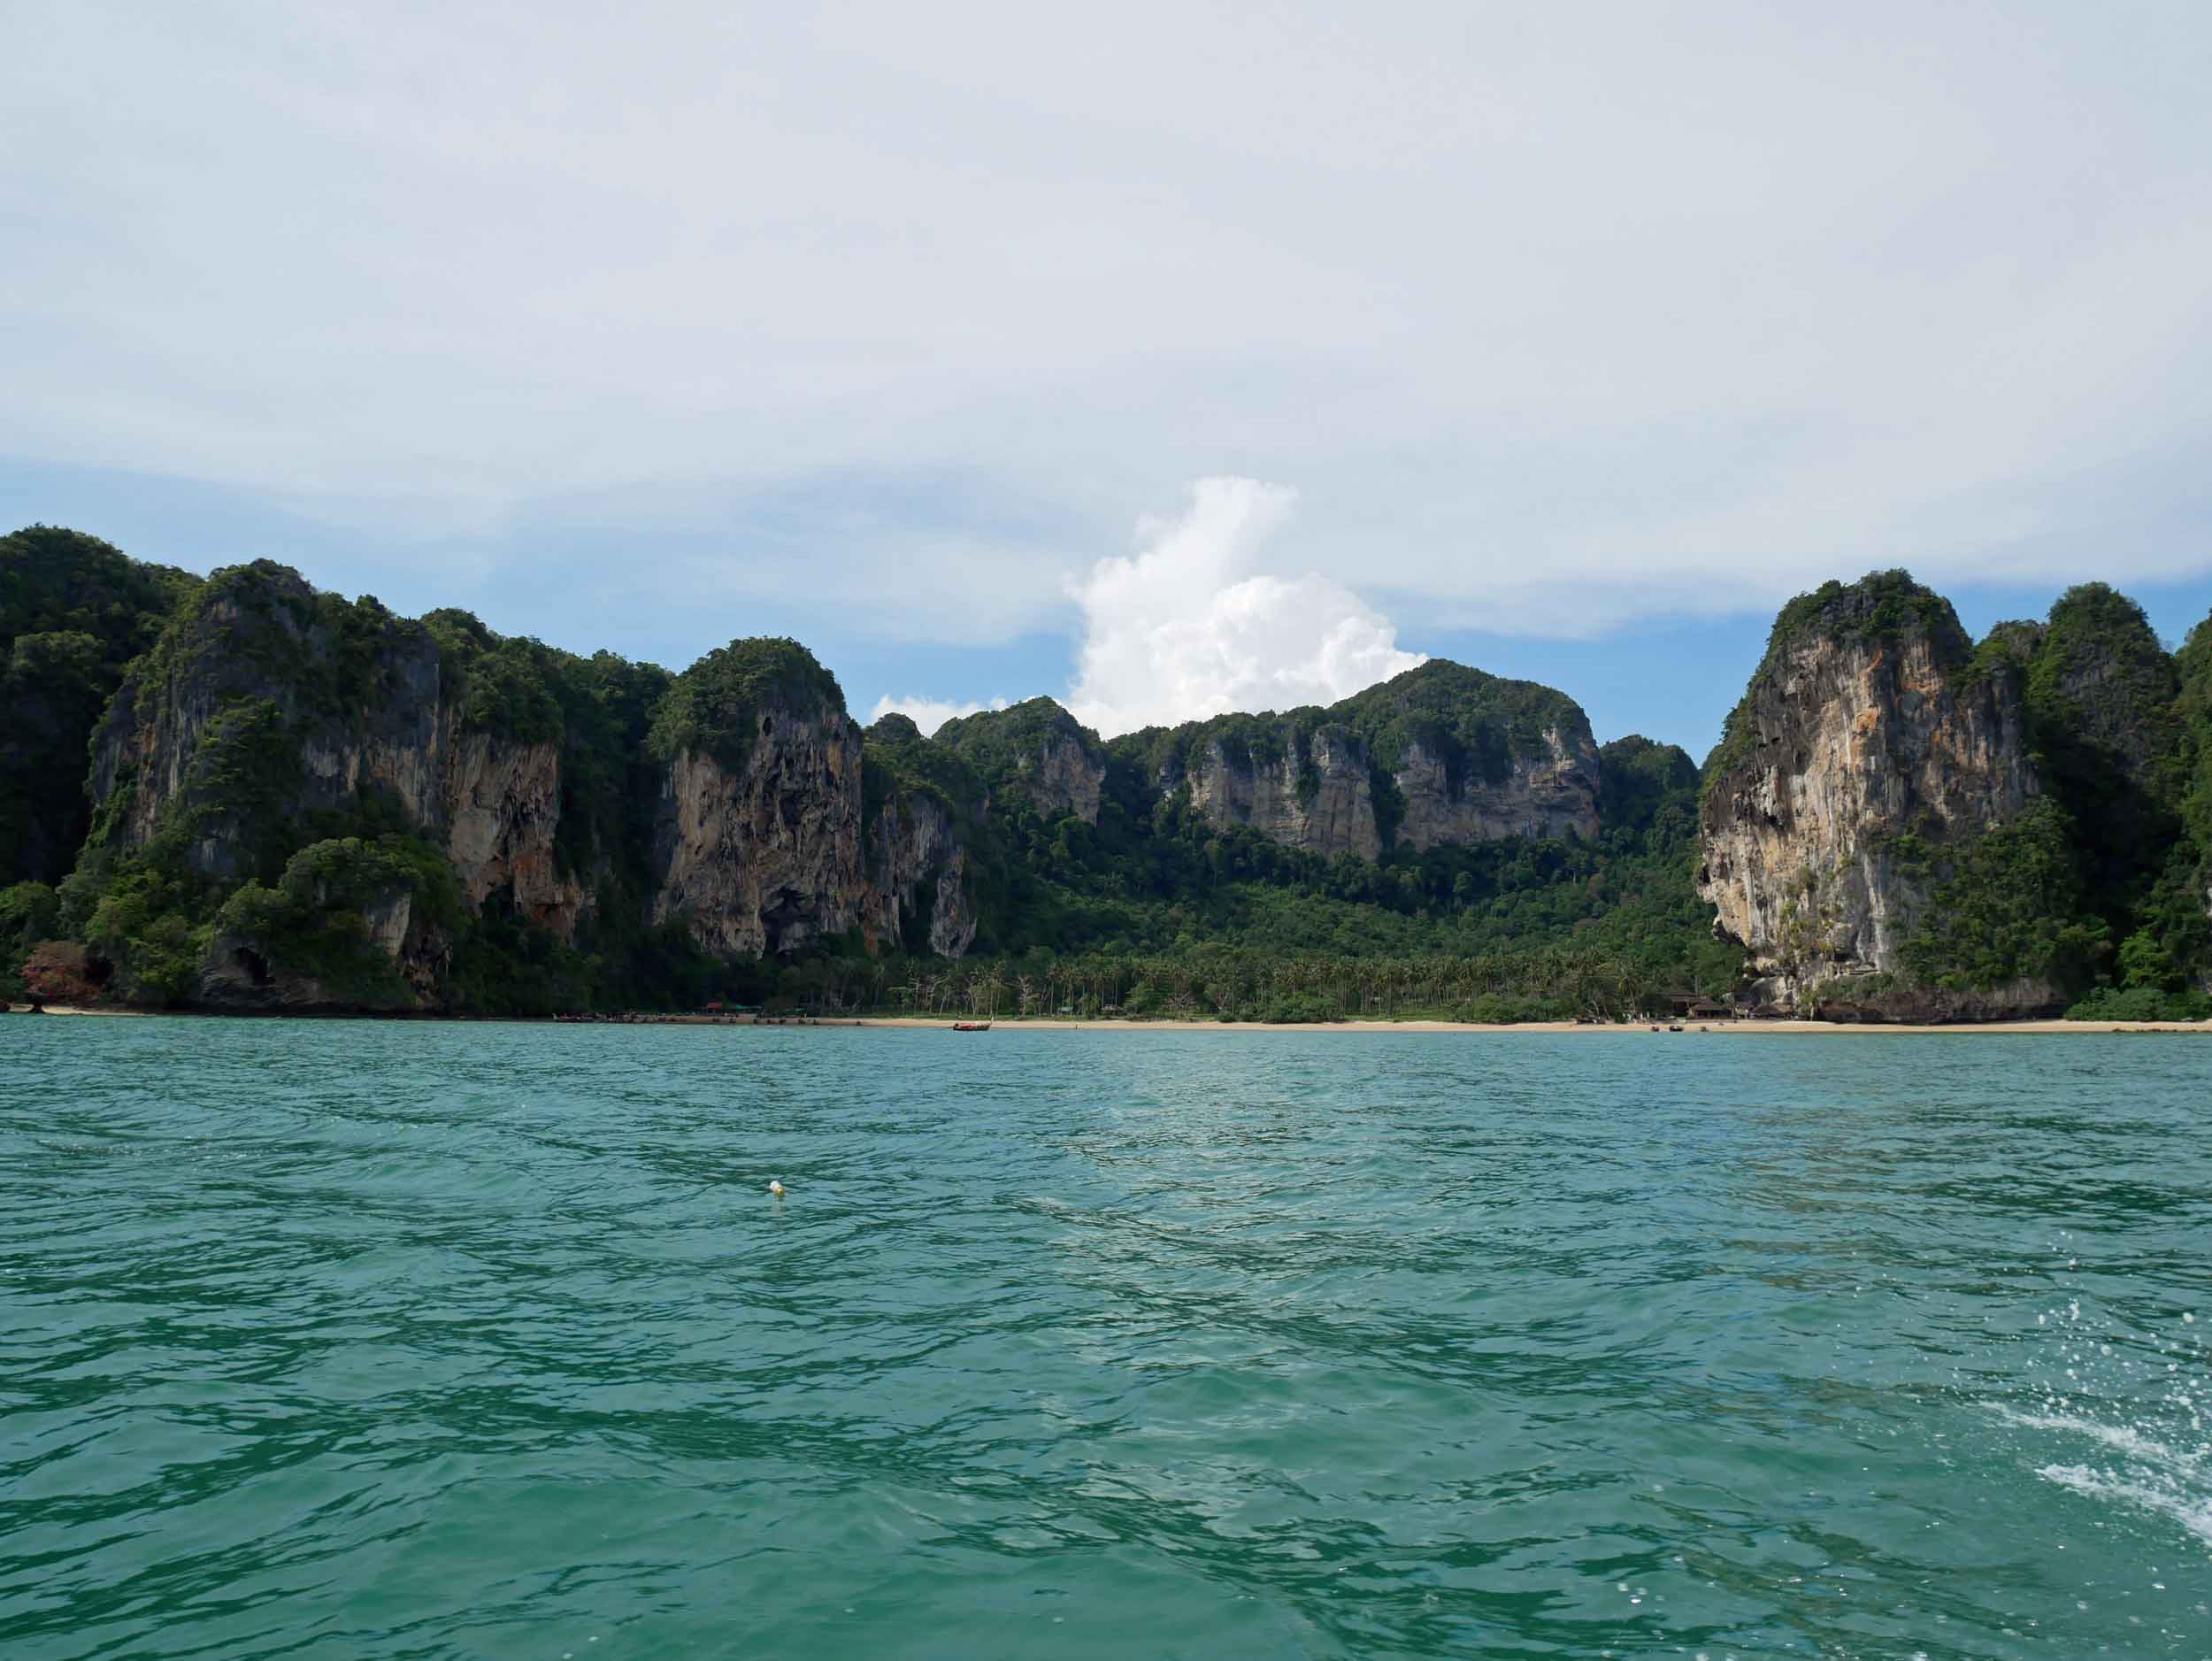 The passing scenery as we make our way to Railay Beach, which is surrounded by towering rock formations.